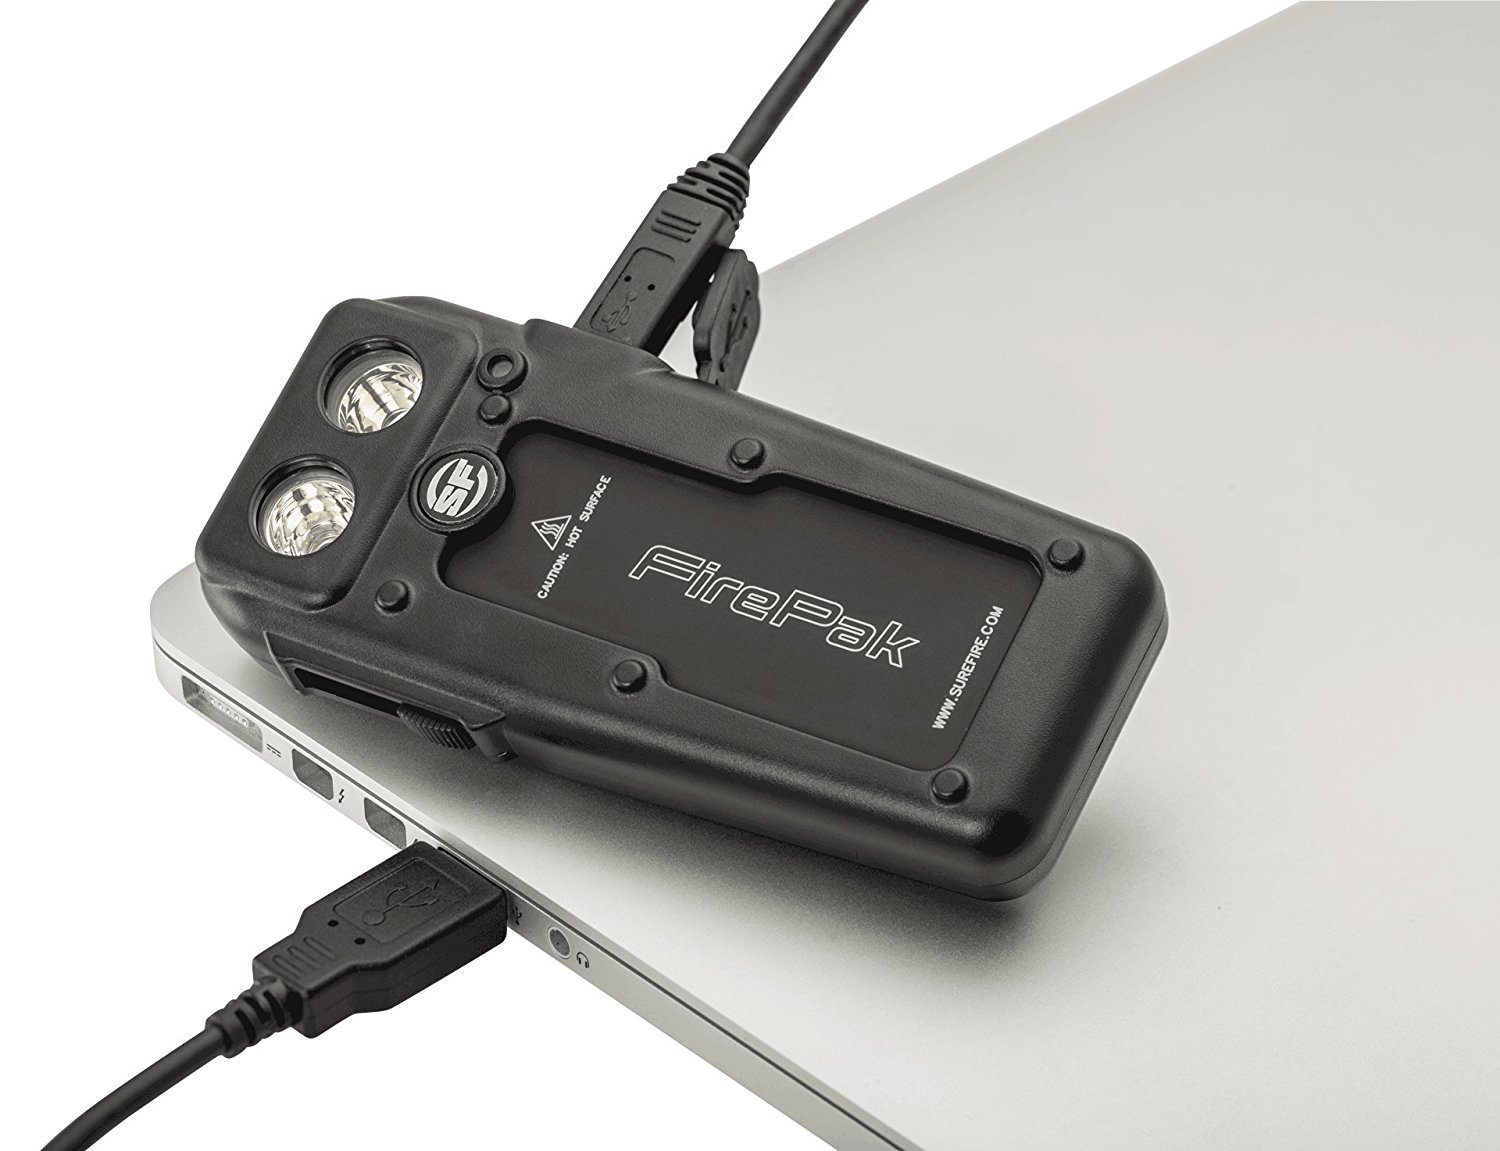 Best for moments in dark -FirePak™ Smartphone Video Illuminator + Charger